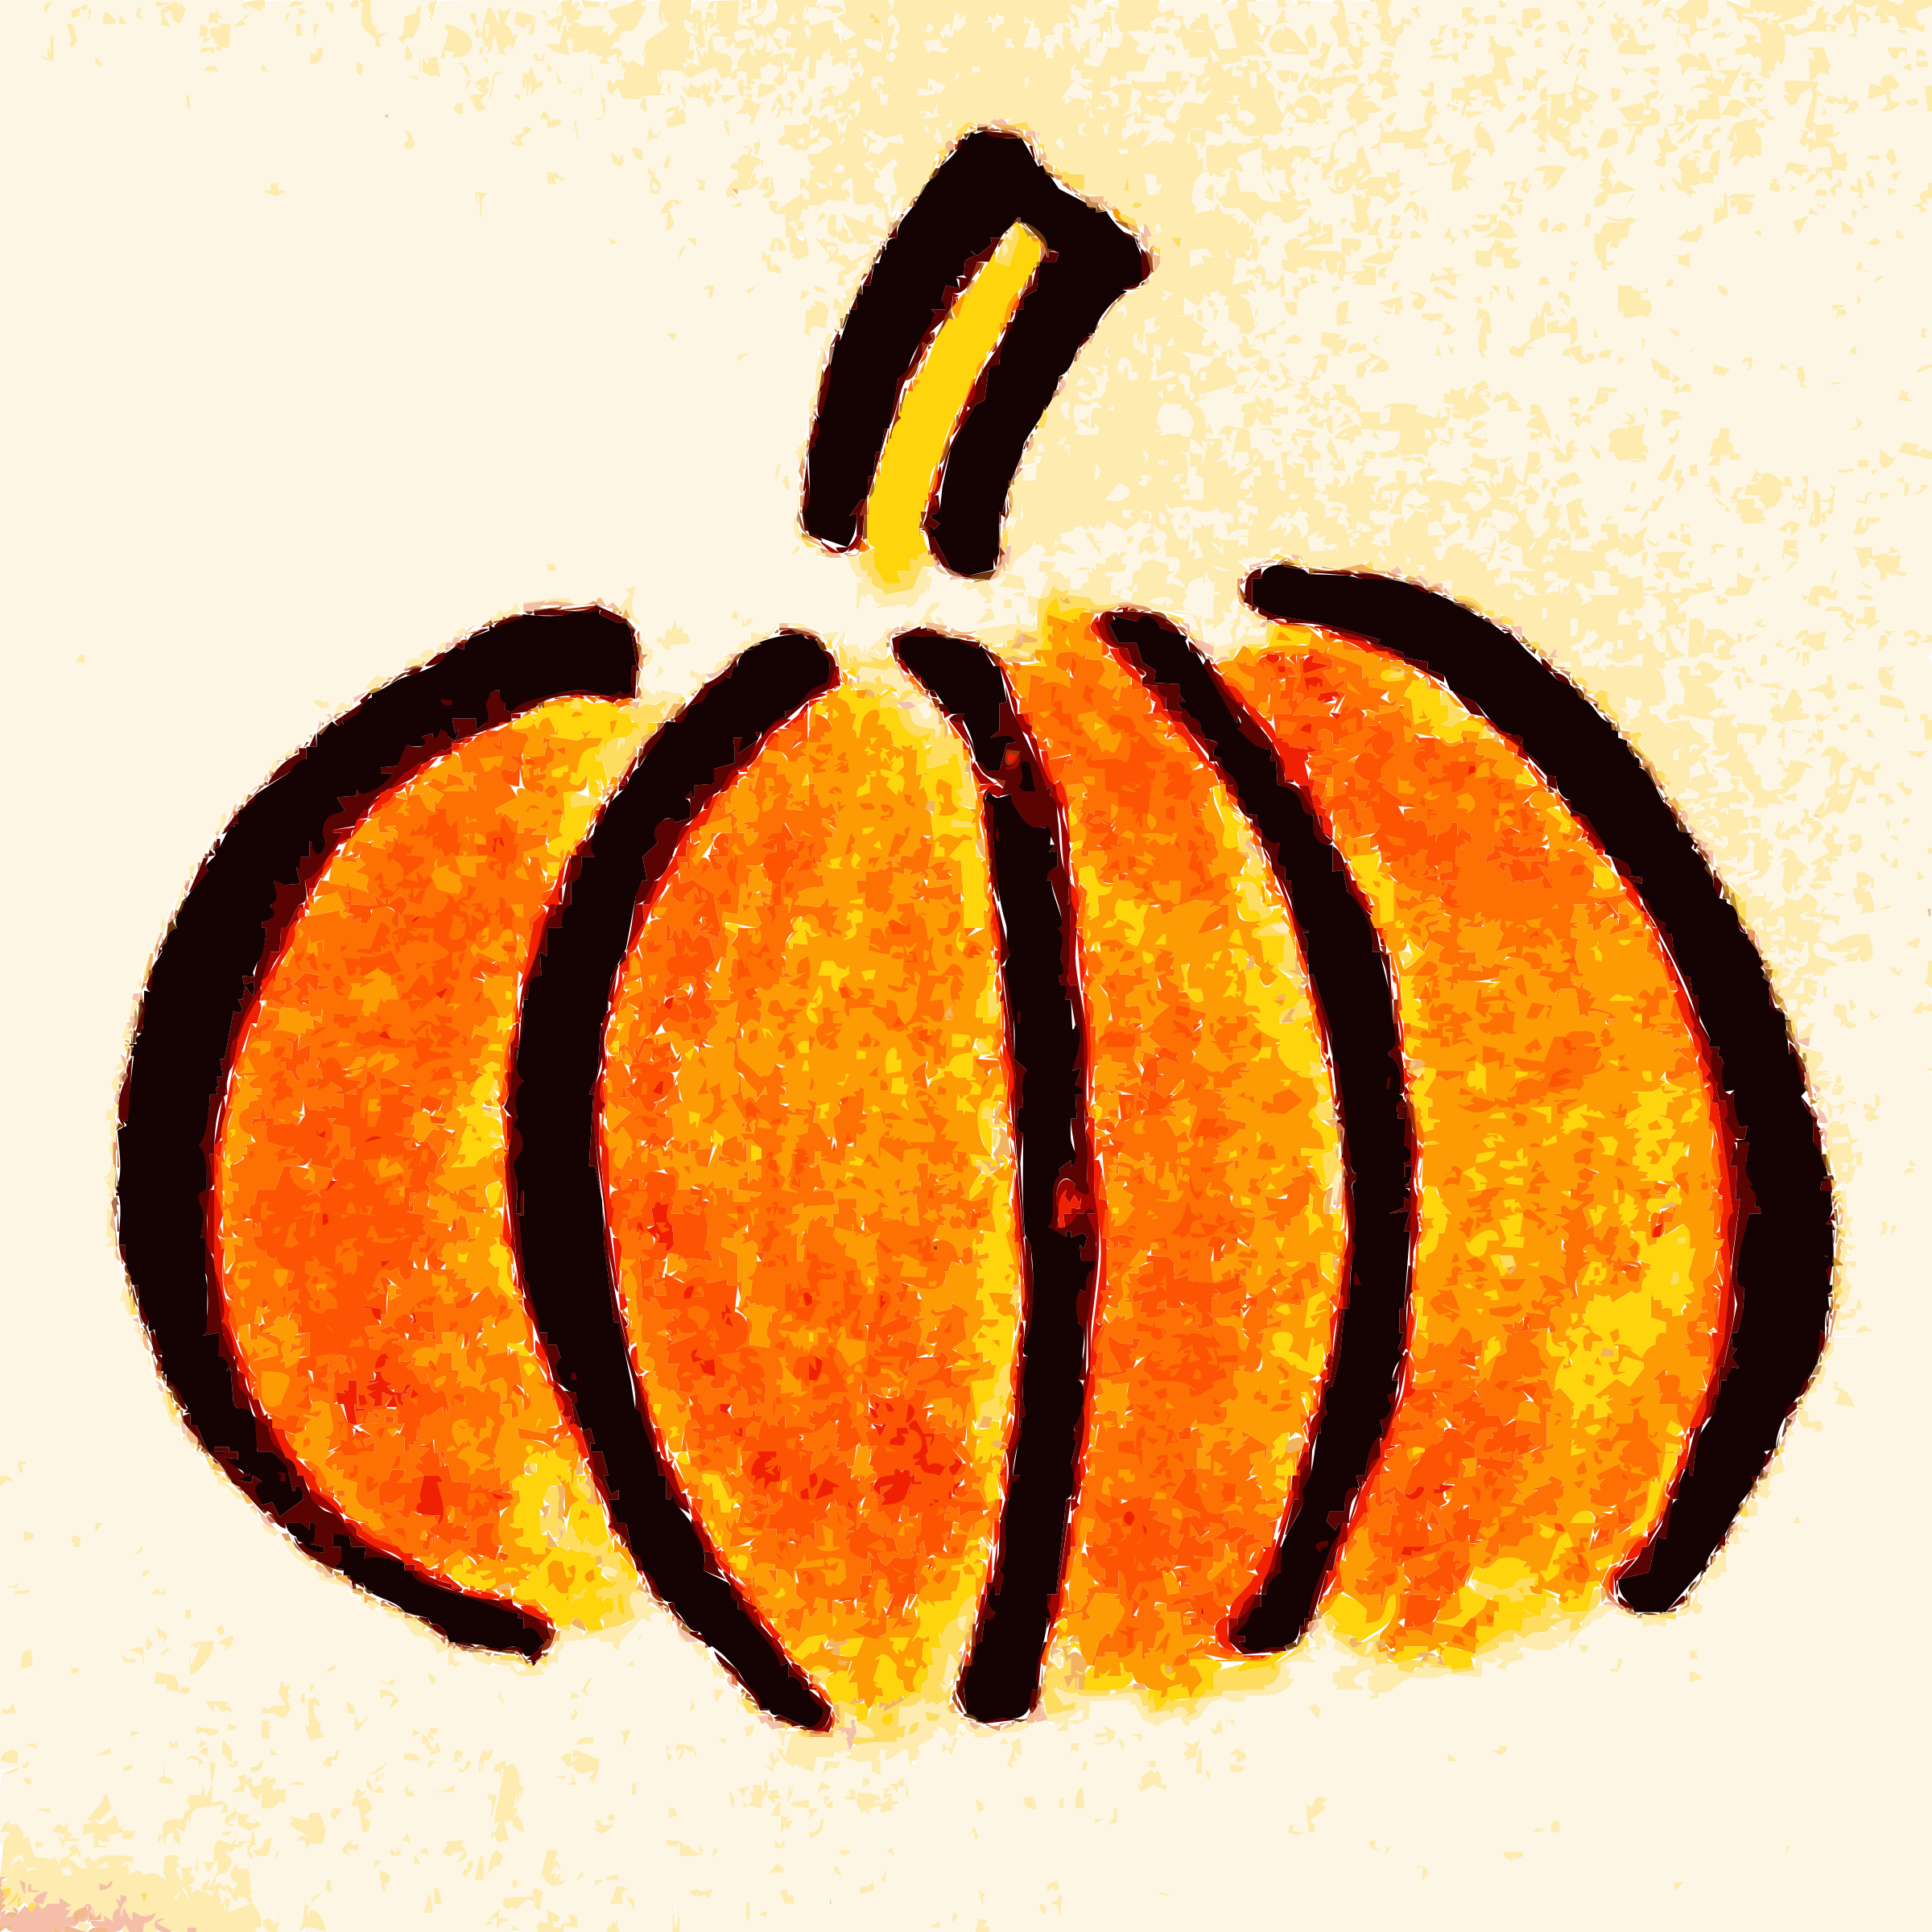 Pumpkin wallpaper clipart picture stock Clipart - Hand drawn Pumpkin Clipart picture stock